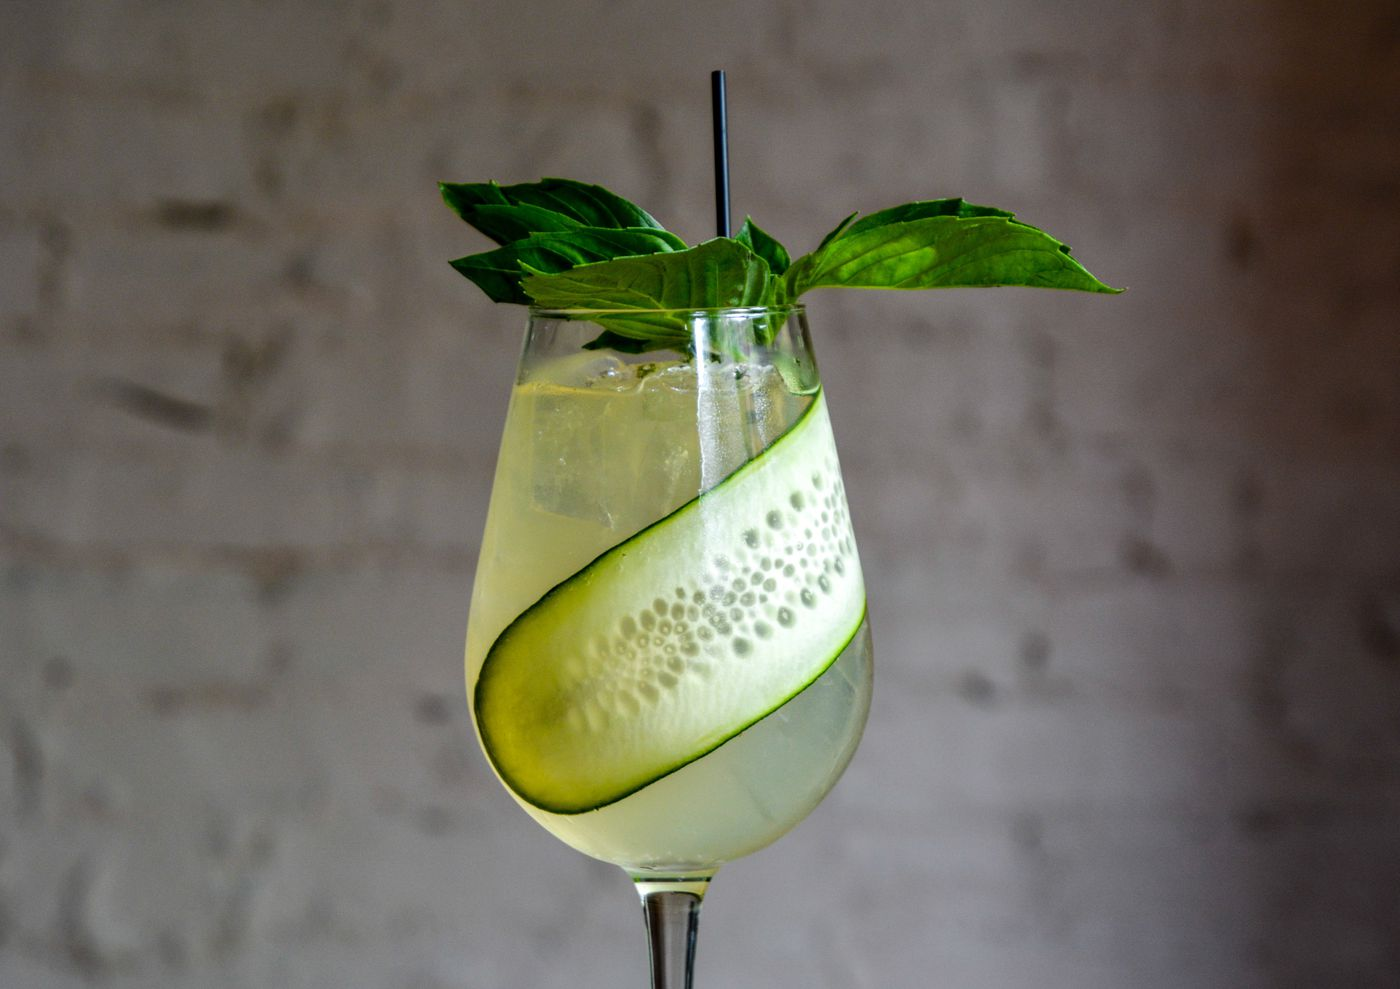 At Jamonera, find the Lincoln Club Cup, a drink that combines Lillet and earthy Bénédictine with muddled cucumber, orange, lime, and lemon. Finished with a thinly sliced cucumber and sprig of basil, the pale green drink emanates spring.